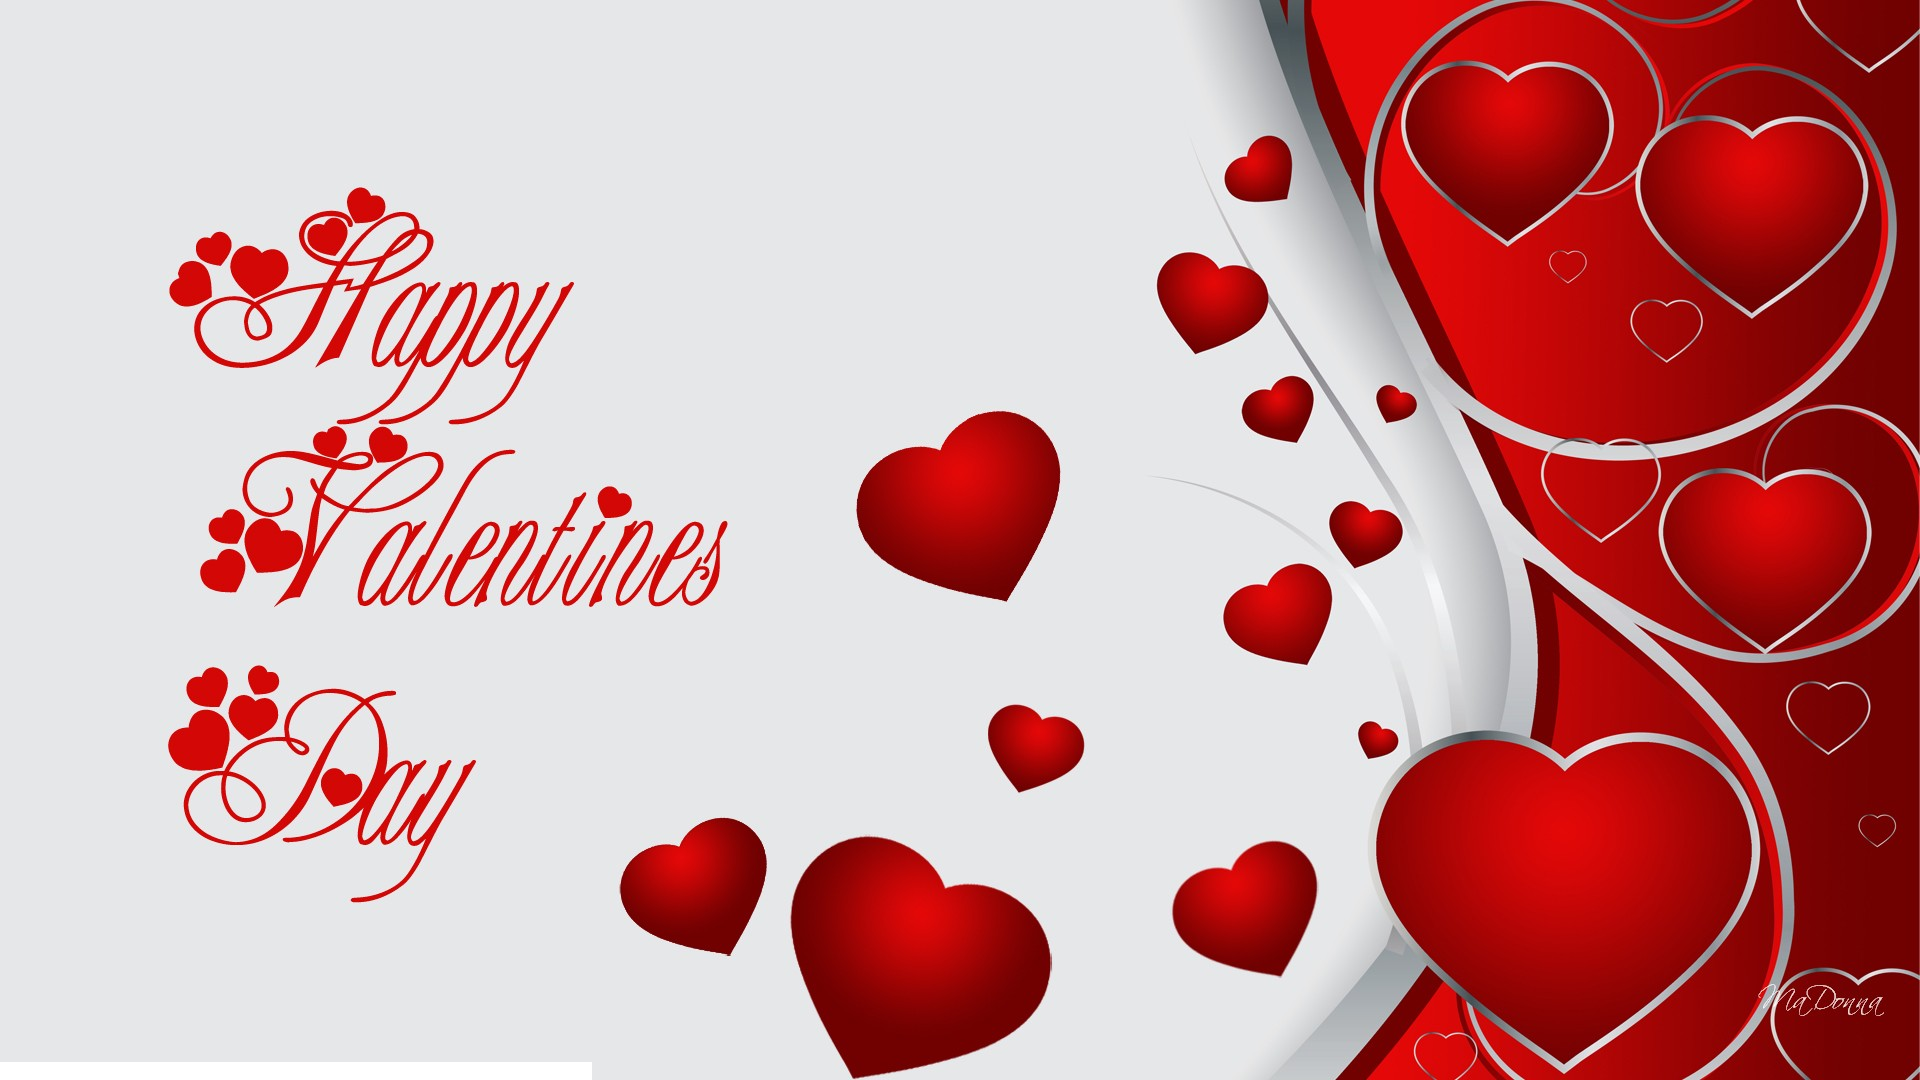 10 best] valentine's day pc wallpapers to make the mood romantic, Ideas